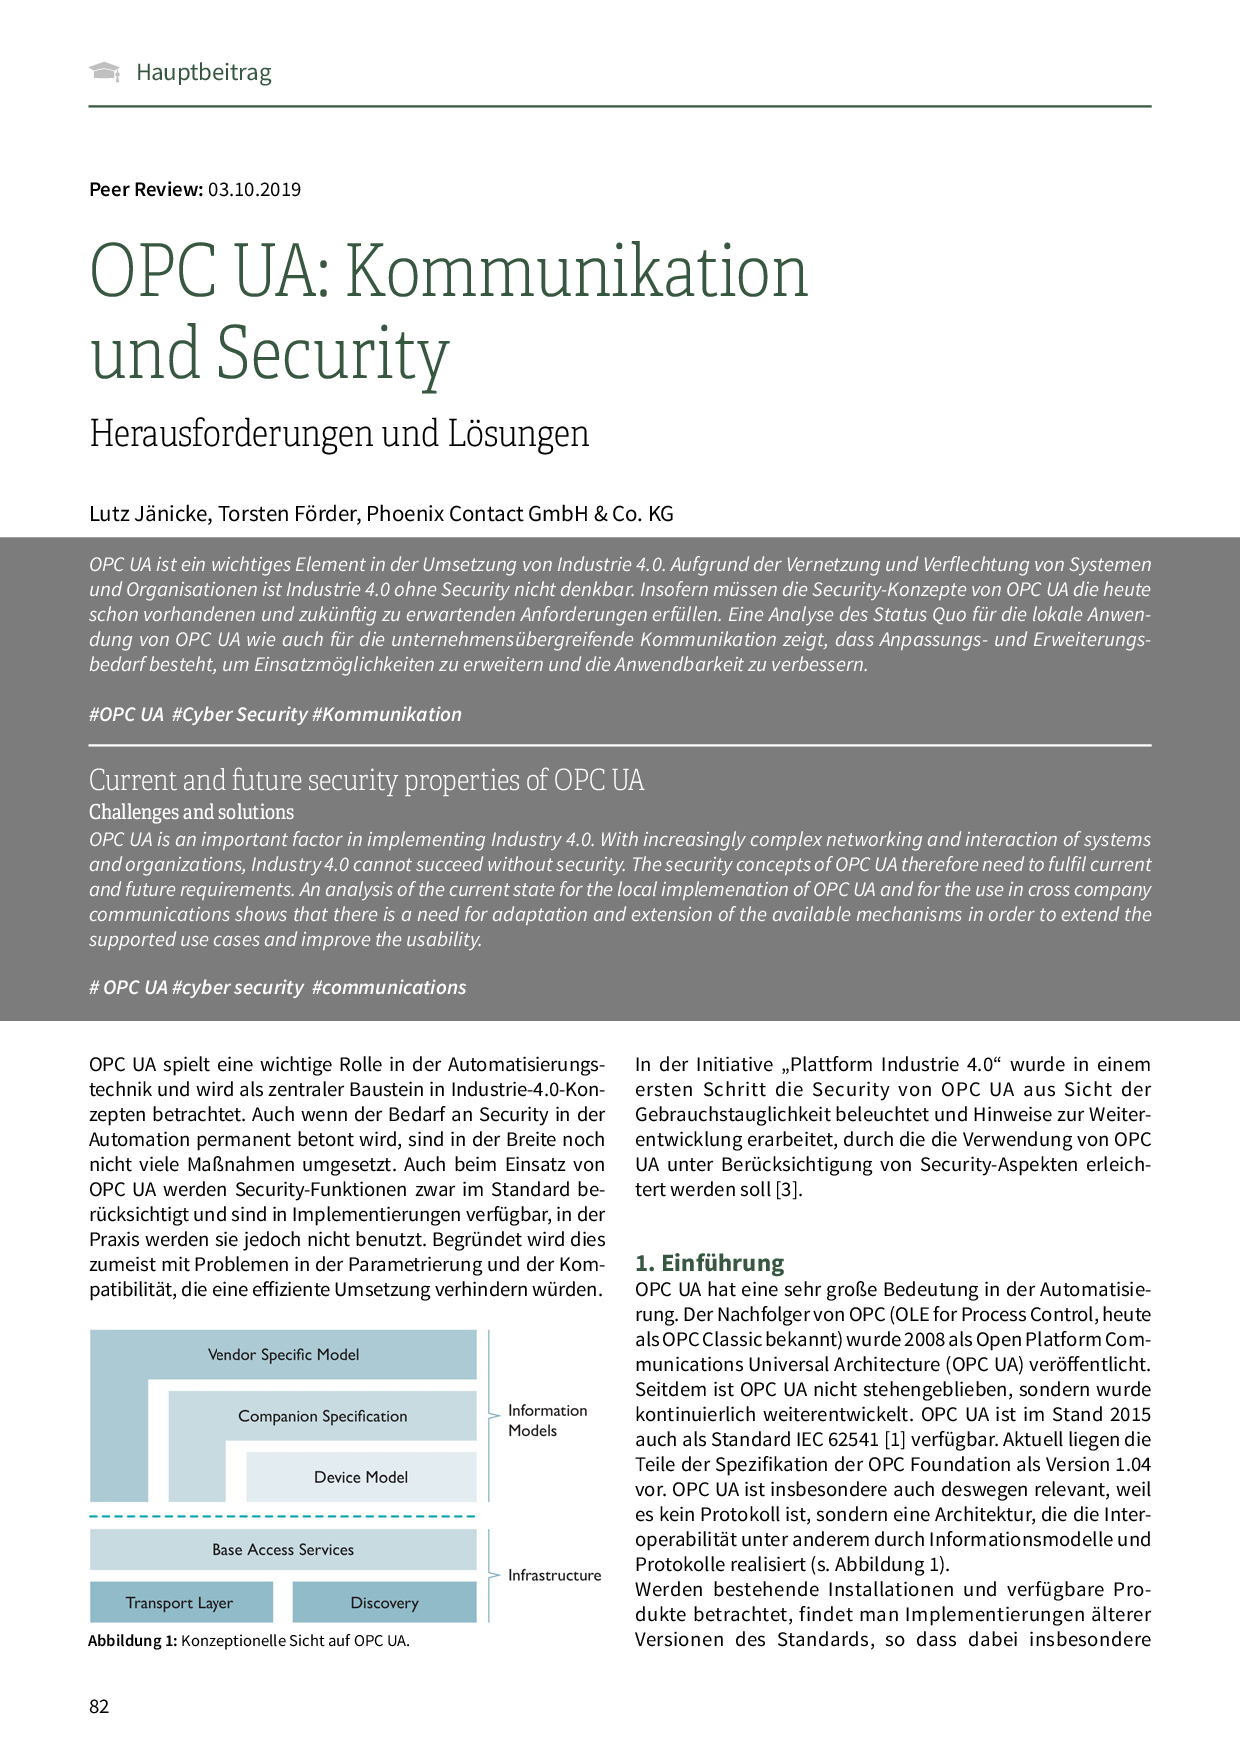 OPC UA: Kommunikation und Security